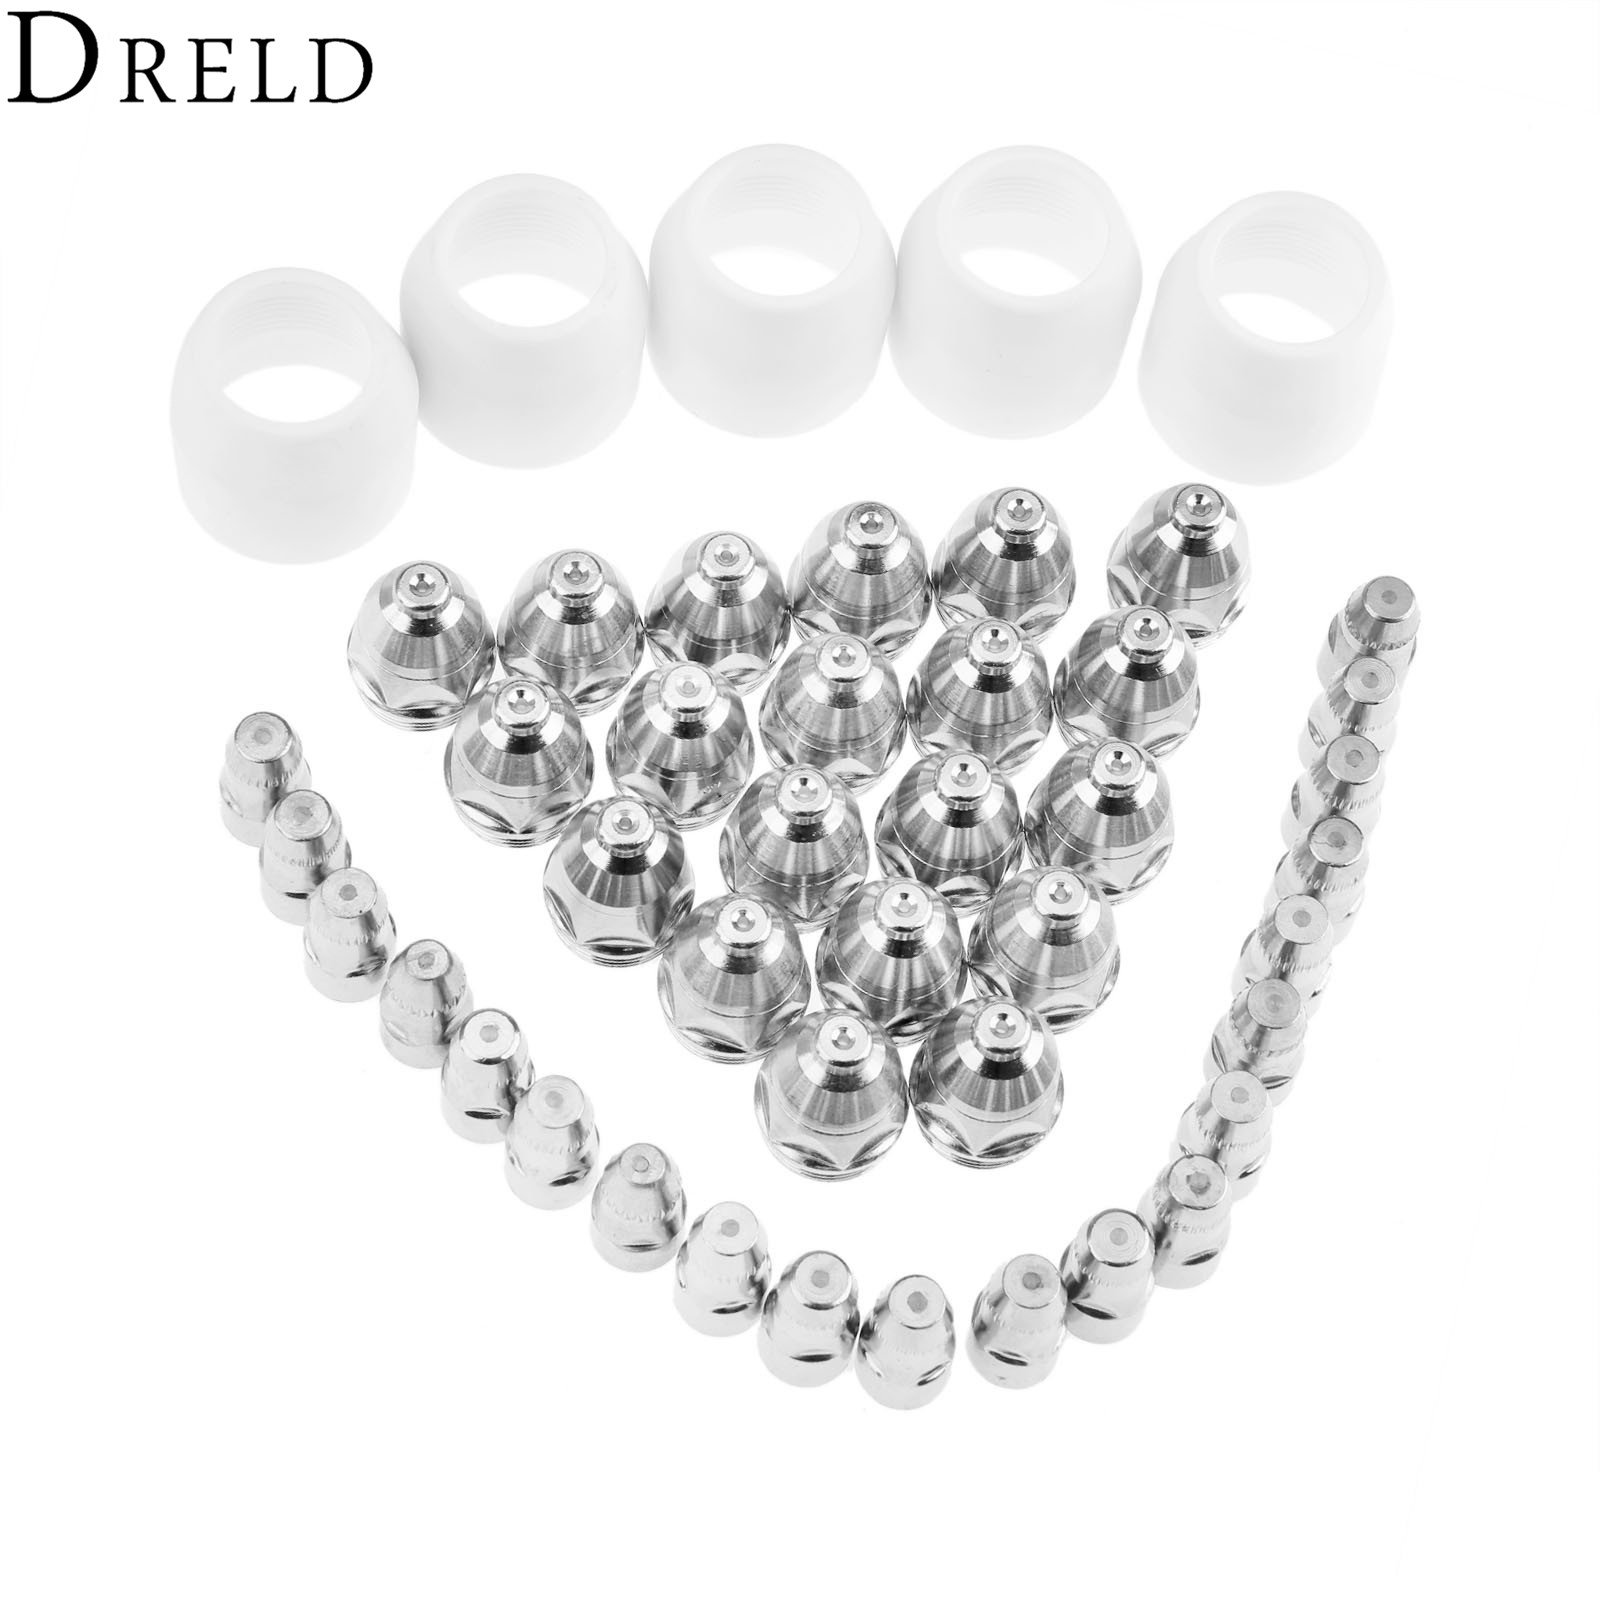 DRELD 45pcs/set P80 Electrode Tips 1.5  Nozzle Shield Cup For P-80 Plasma Cutter Torch Consumable 80-100A Welding Soldering Tool